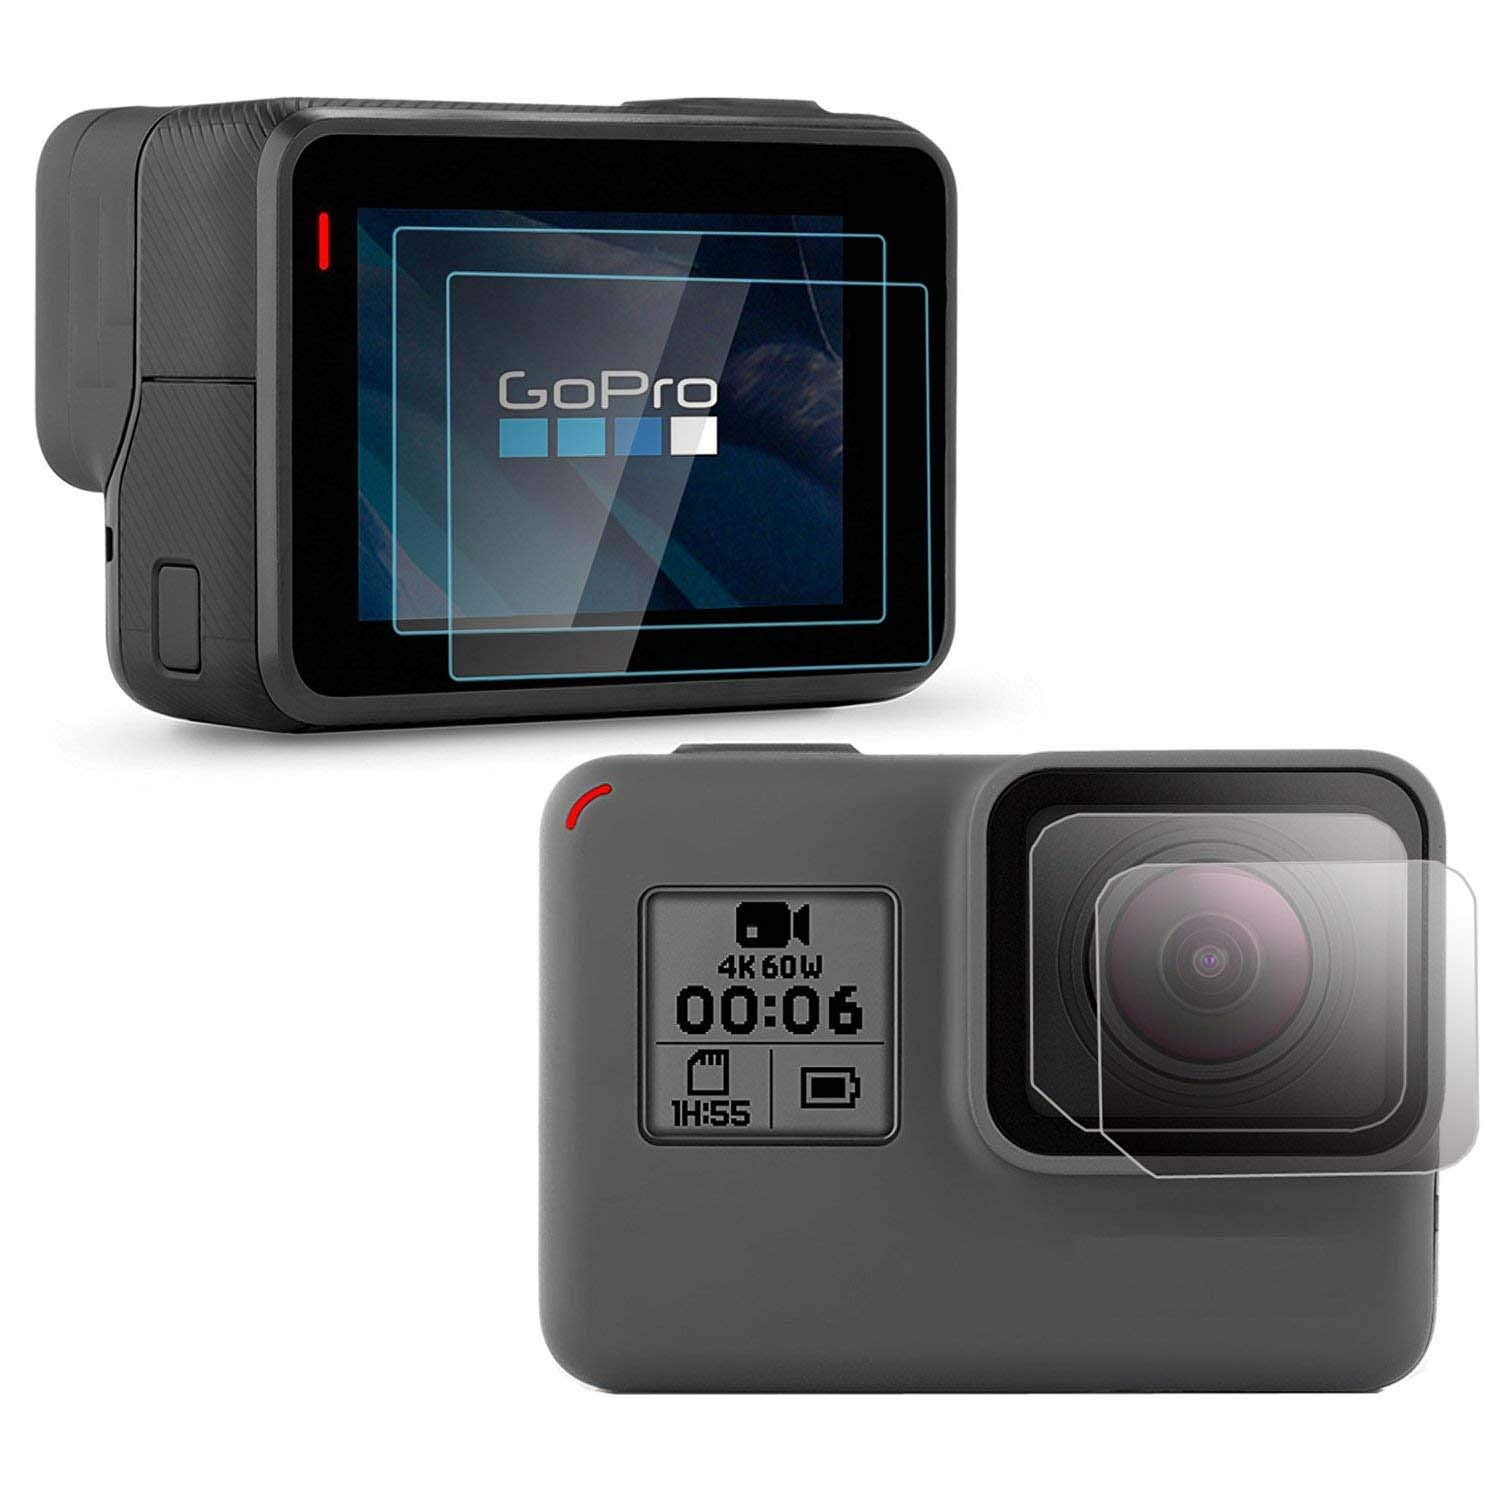 4 Pack PCTC Tempered Glass Screen Protector Compatible for Gopro Hero 7//6//5 Black Sport Action Camcorder Tough Screen and Lens Cap Cover for GoPro Hero 7 6 Black 5